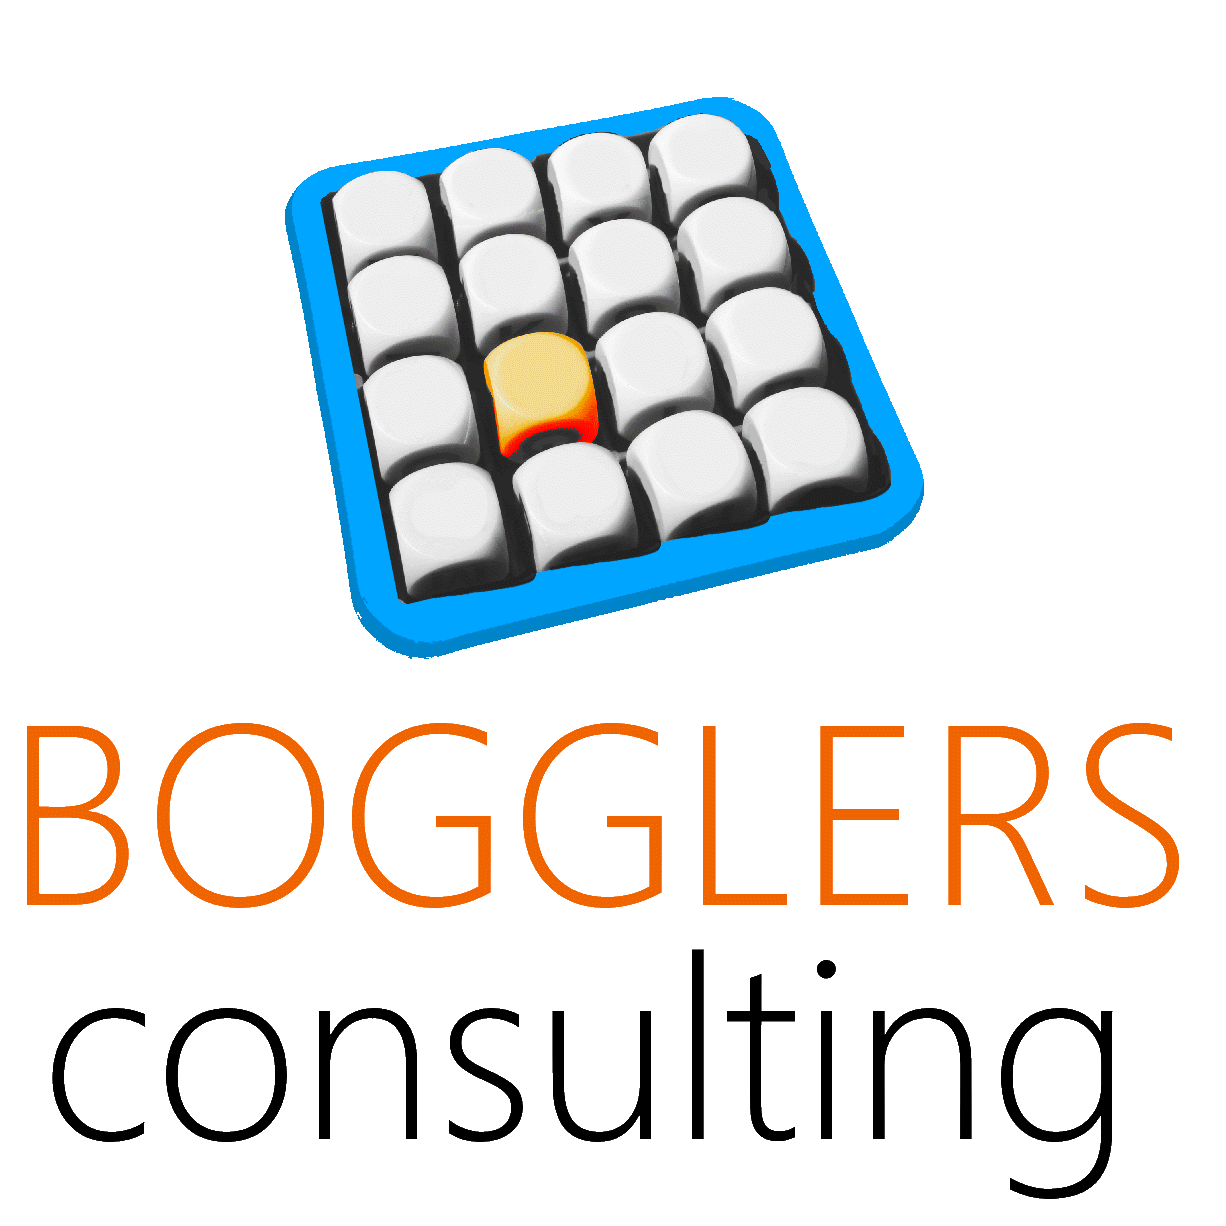 Bogglers Consulting